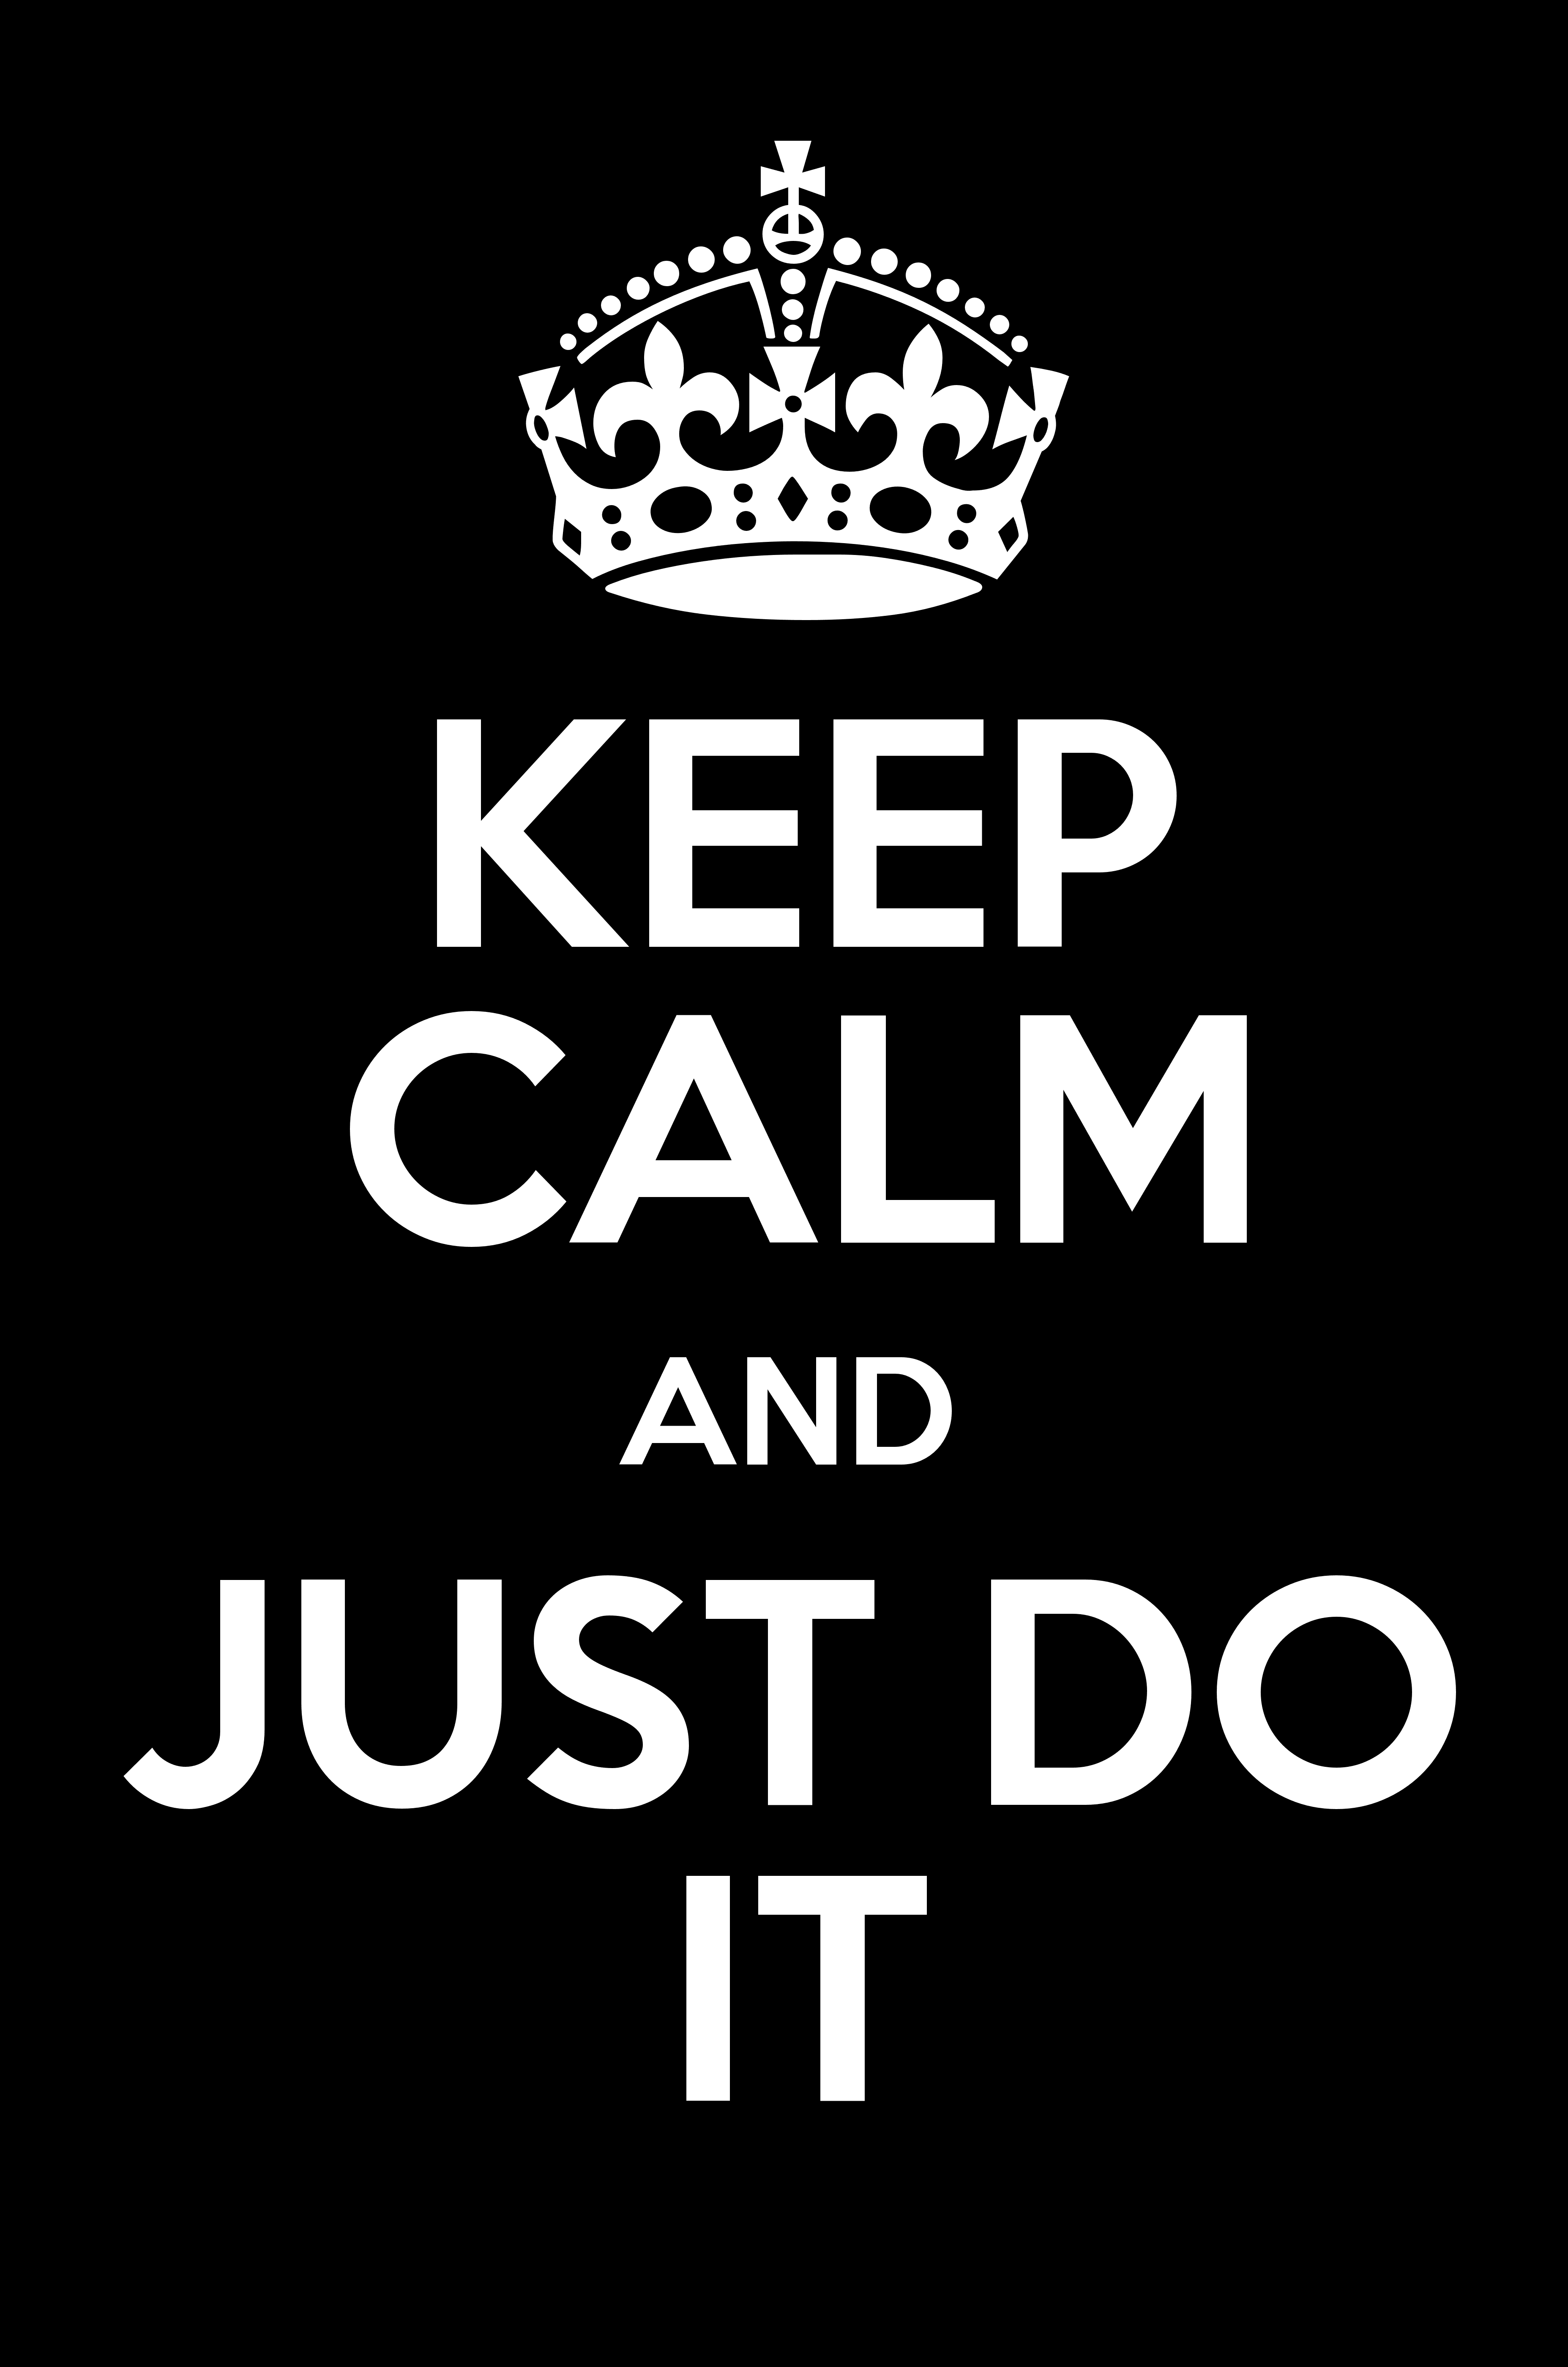 keep calm and just do it keep calm and posters generator maker Nike Just Do It keep calm and just do it poster